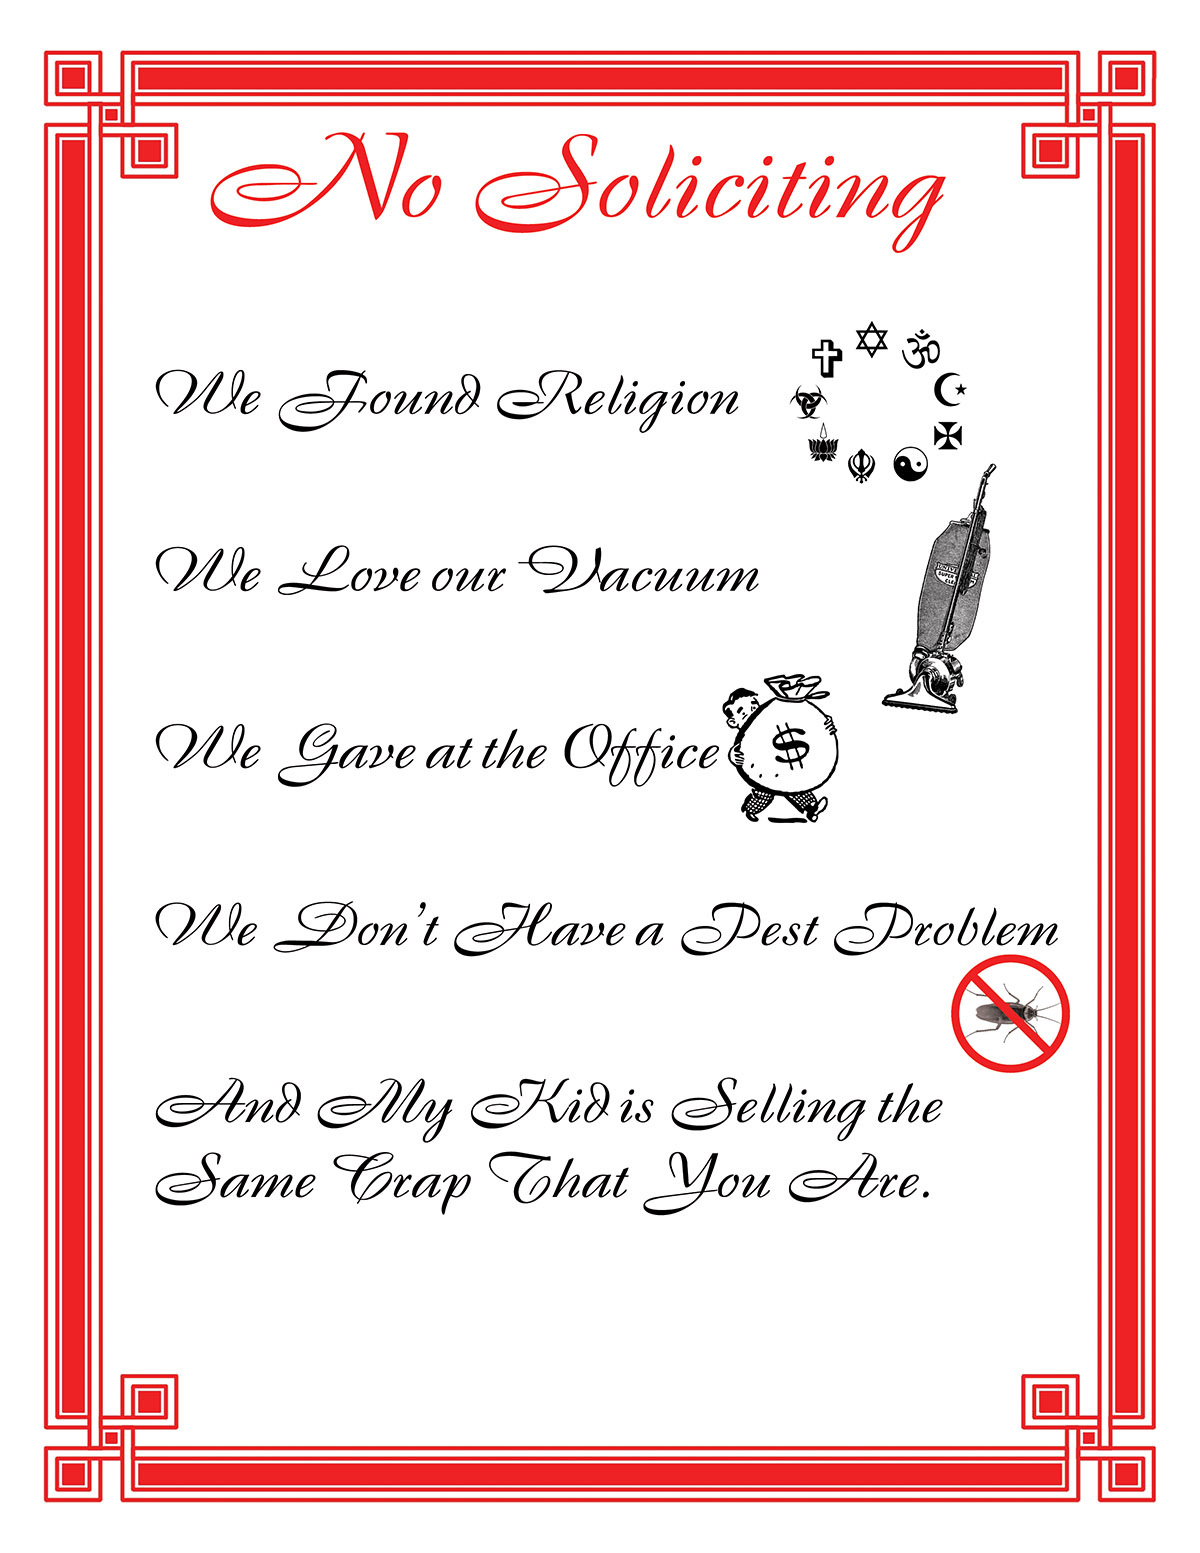 The Facts About Door To Door Soliciting In Holly Springs